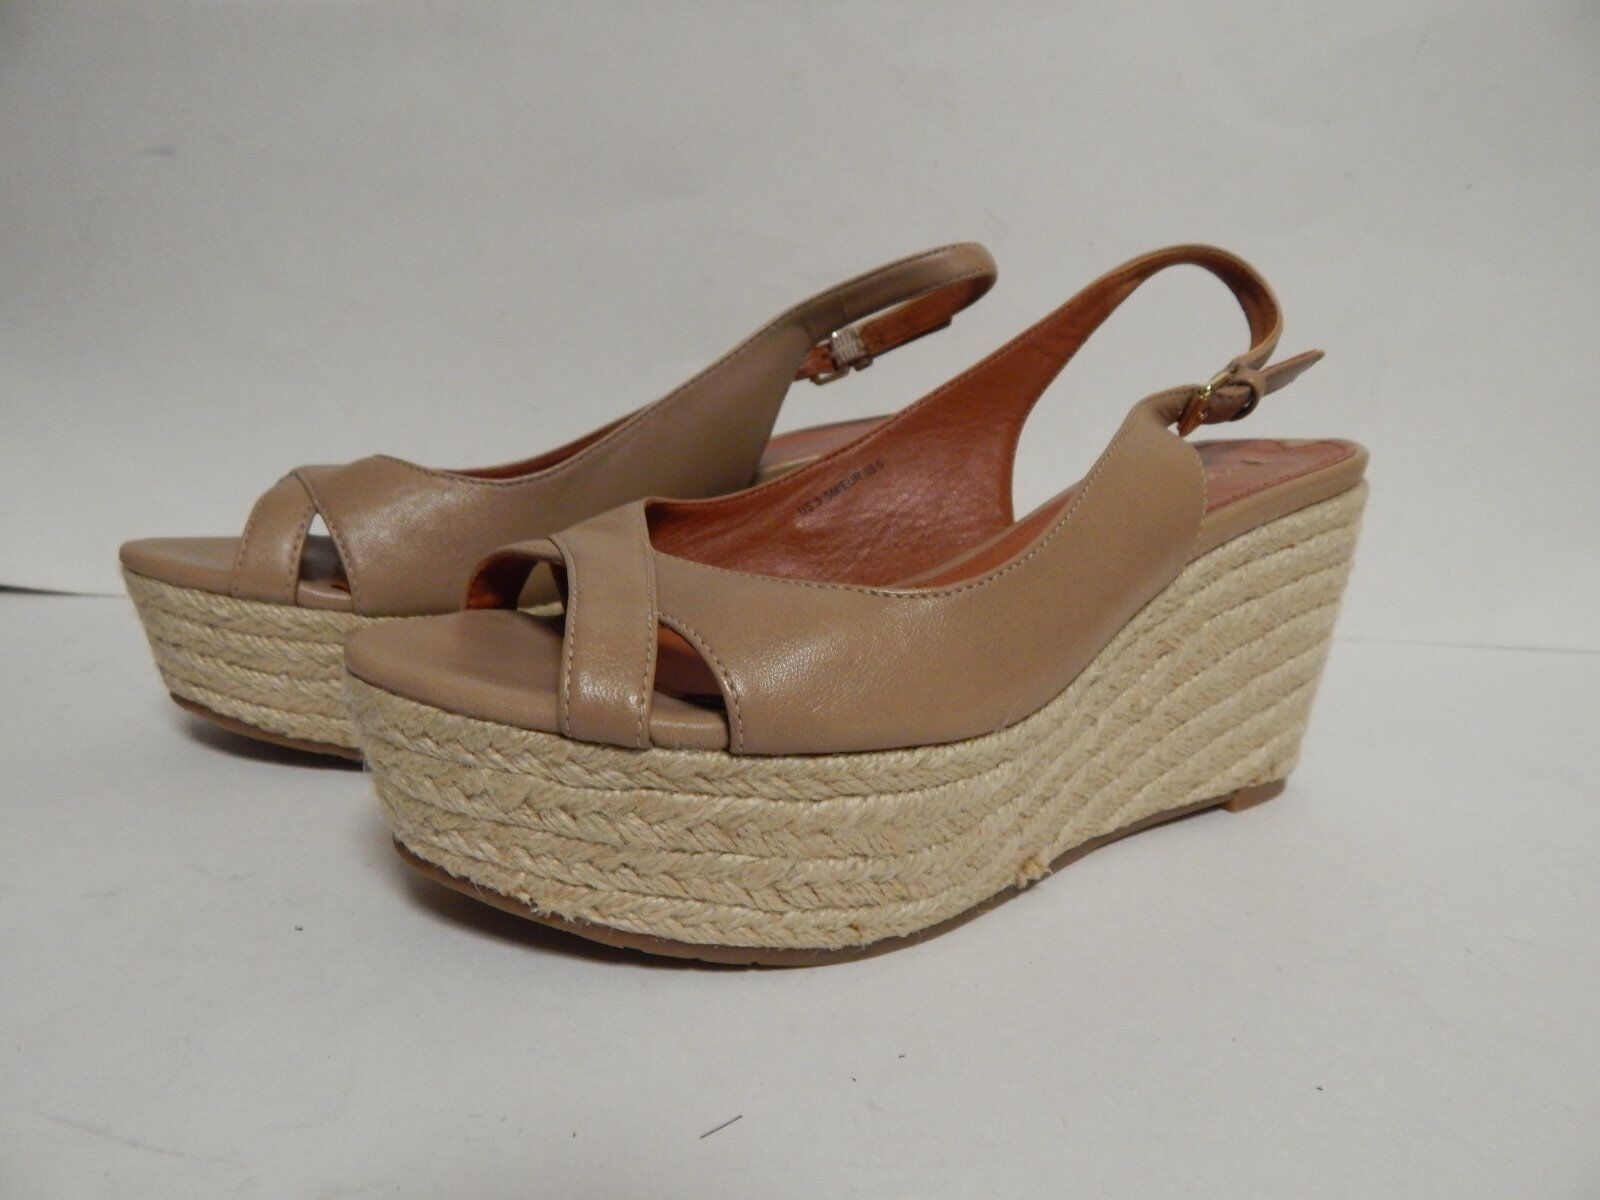 Via Spiga Luciana Wedge Heel Sandal 5.5 M Nude Leather New w  Defect